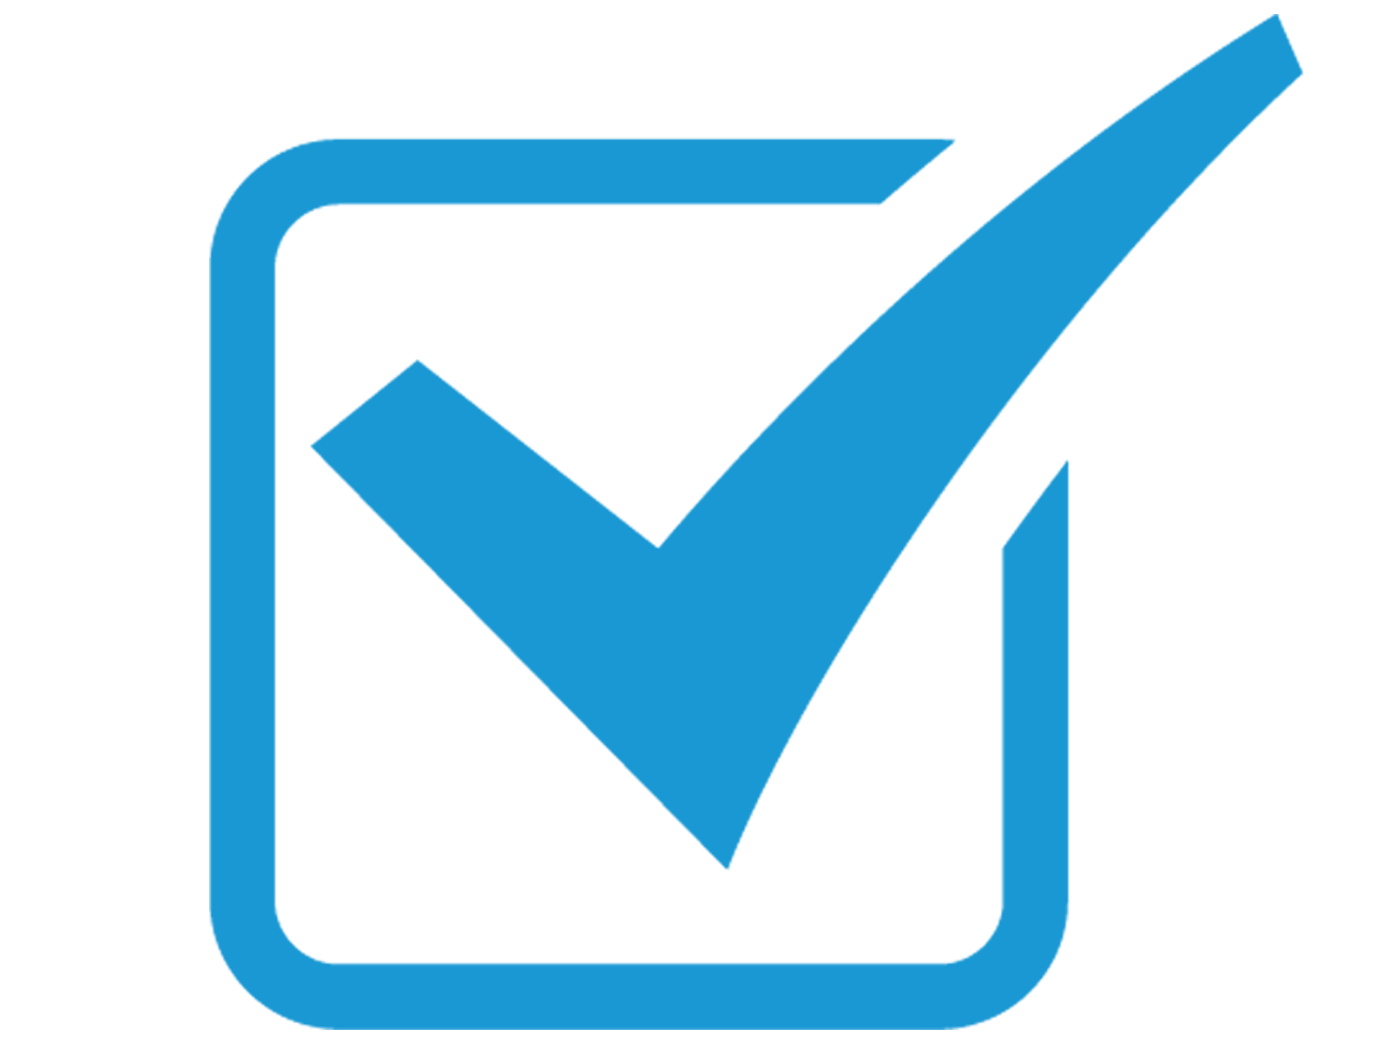 checkmark-blue.png